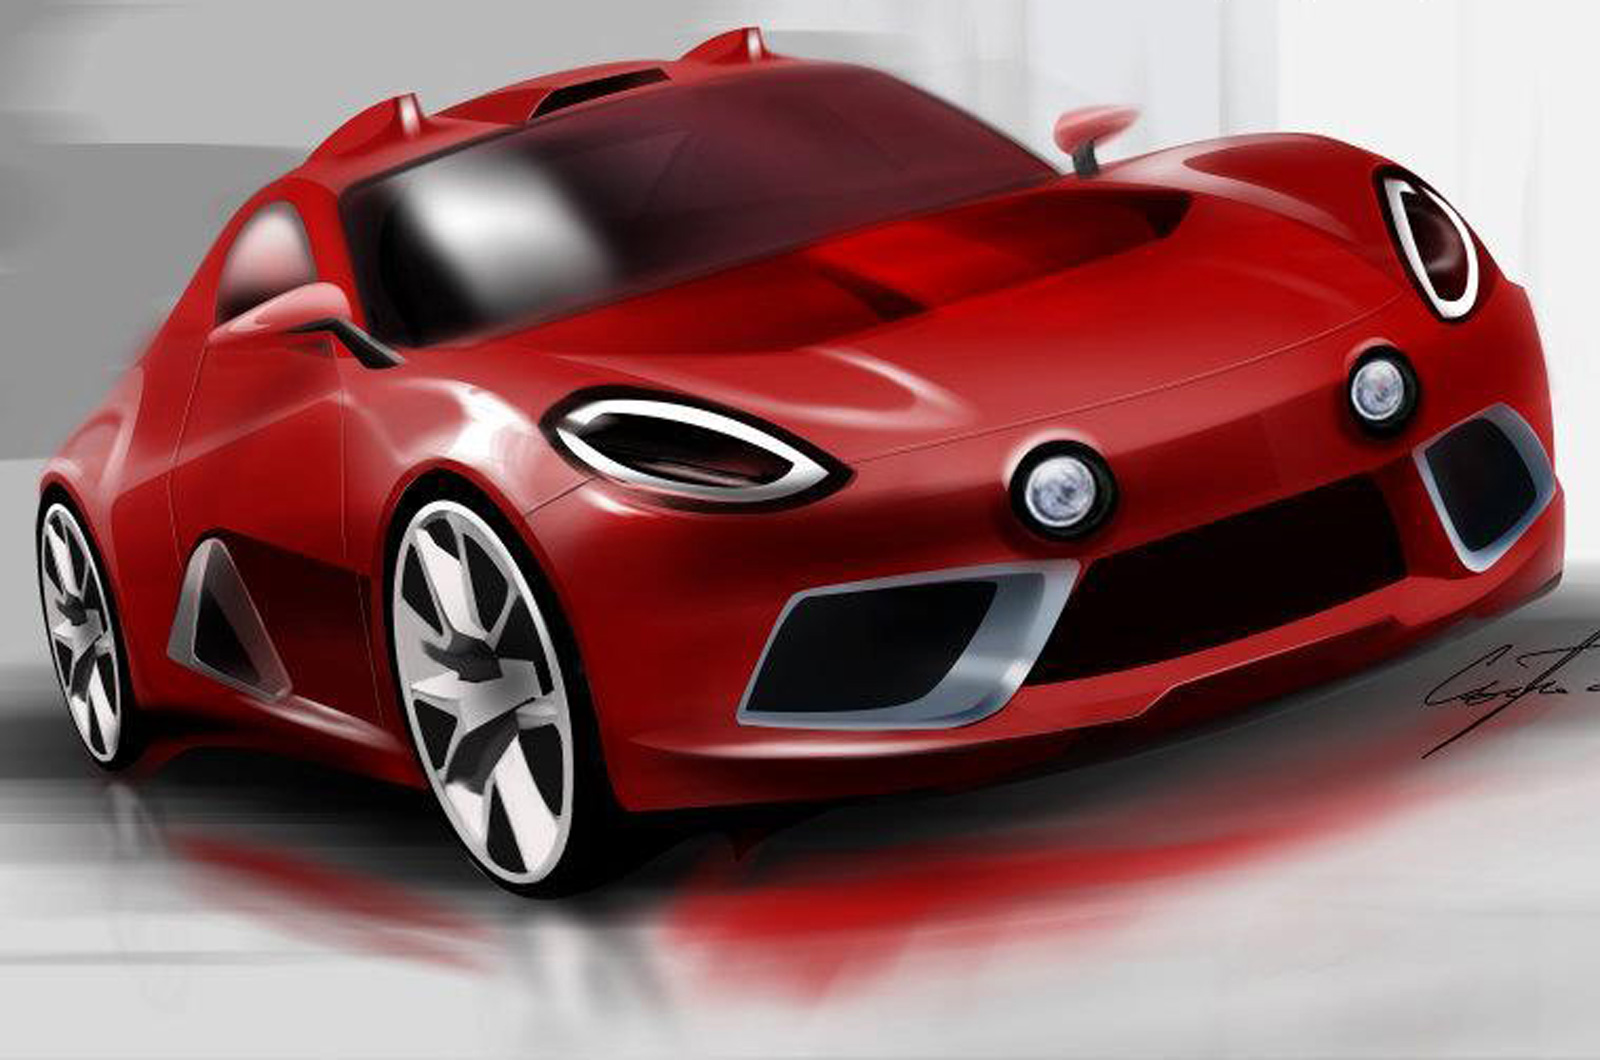 Alpine A110 To Reincarnate In Upcoming Mexican STT-77